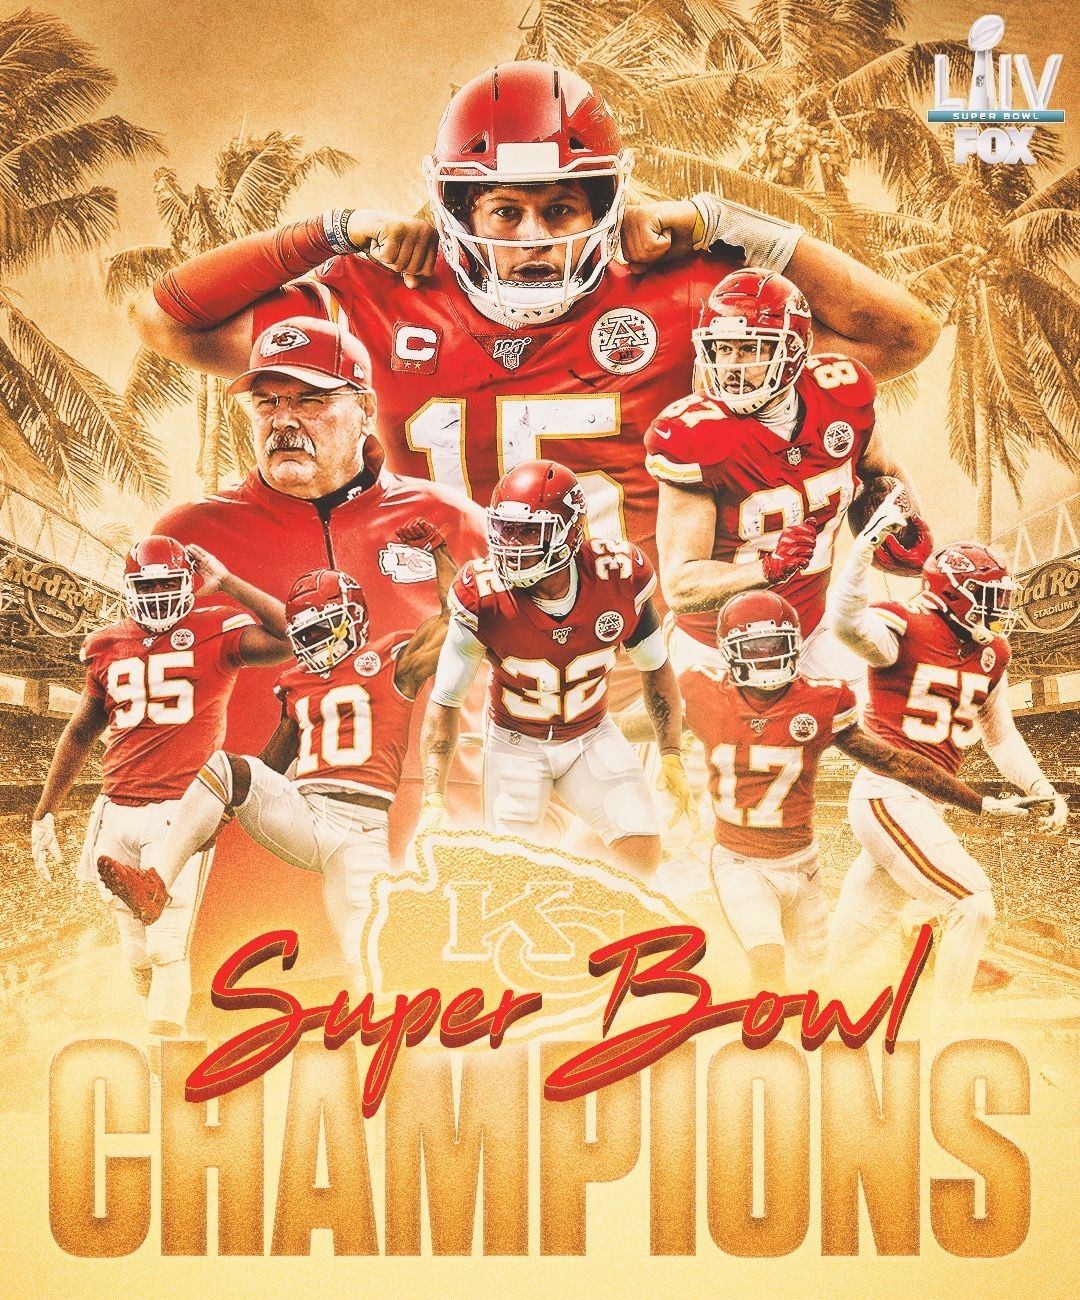 The Kansas City Chiefs Have Done It Kc Wins Their First Ring In 50 Years Thanks To An Epic In 2020 Kc Chiefs Football Kansas City Chiefs Football Kansas City Chiefs